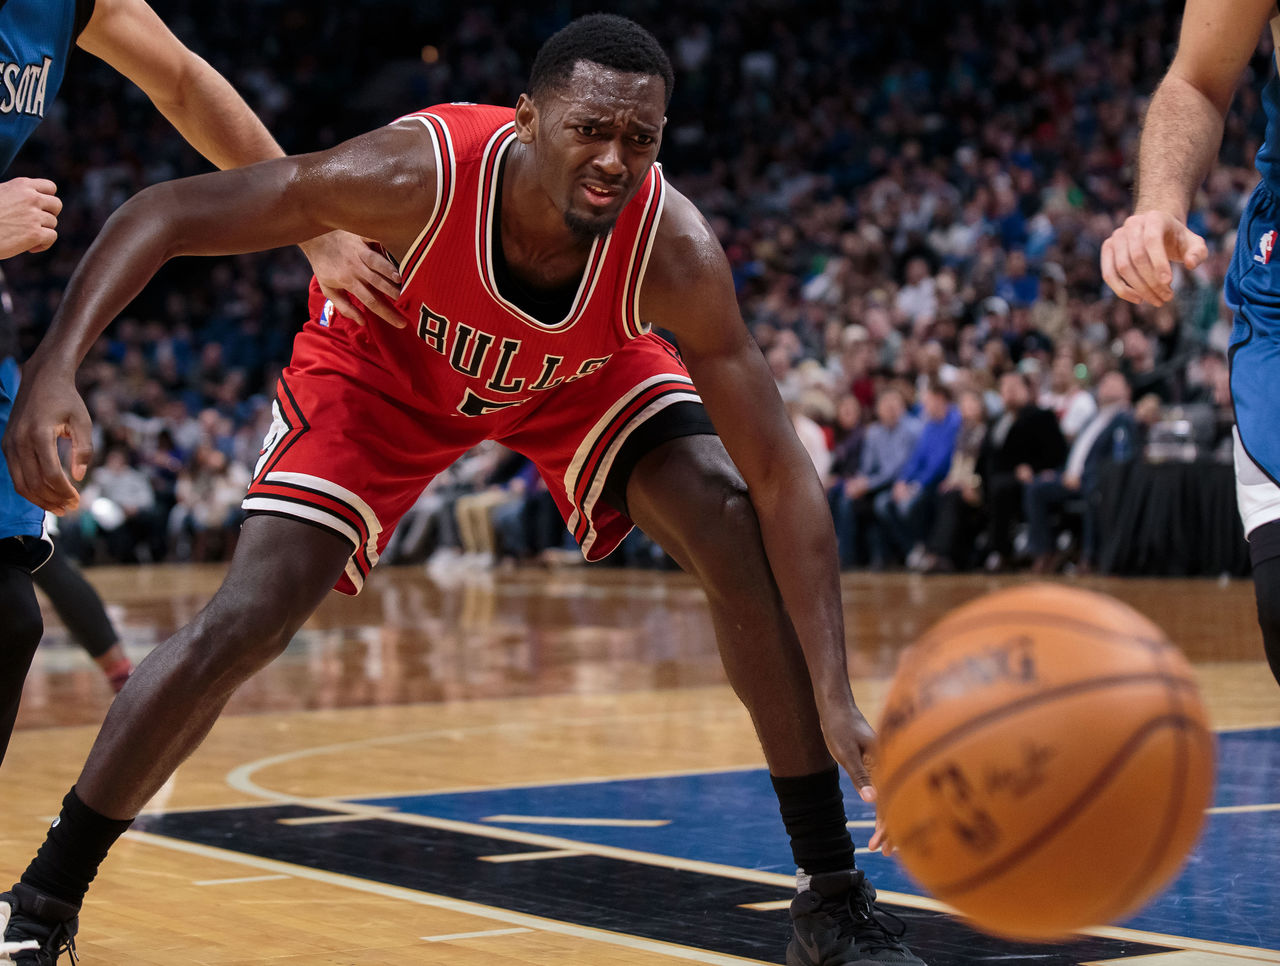 Cropped_2017-02-12t231316z_543440273_nocid_rtrmadp_3_nba-chicago-bulls-at-minnesota-timberwolves